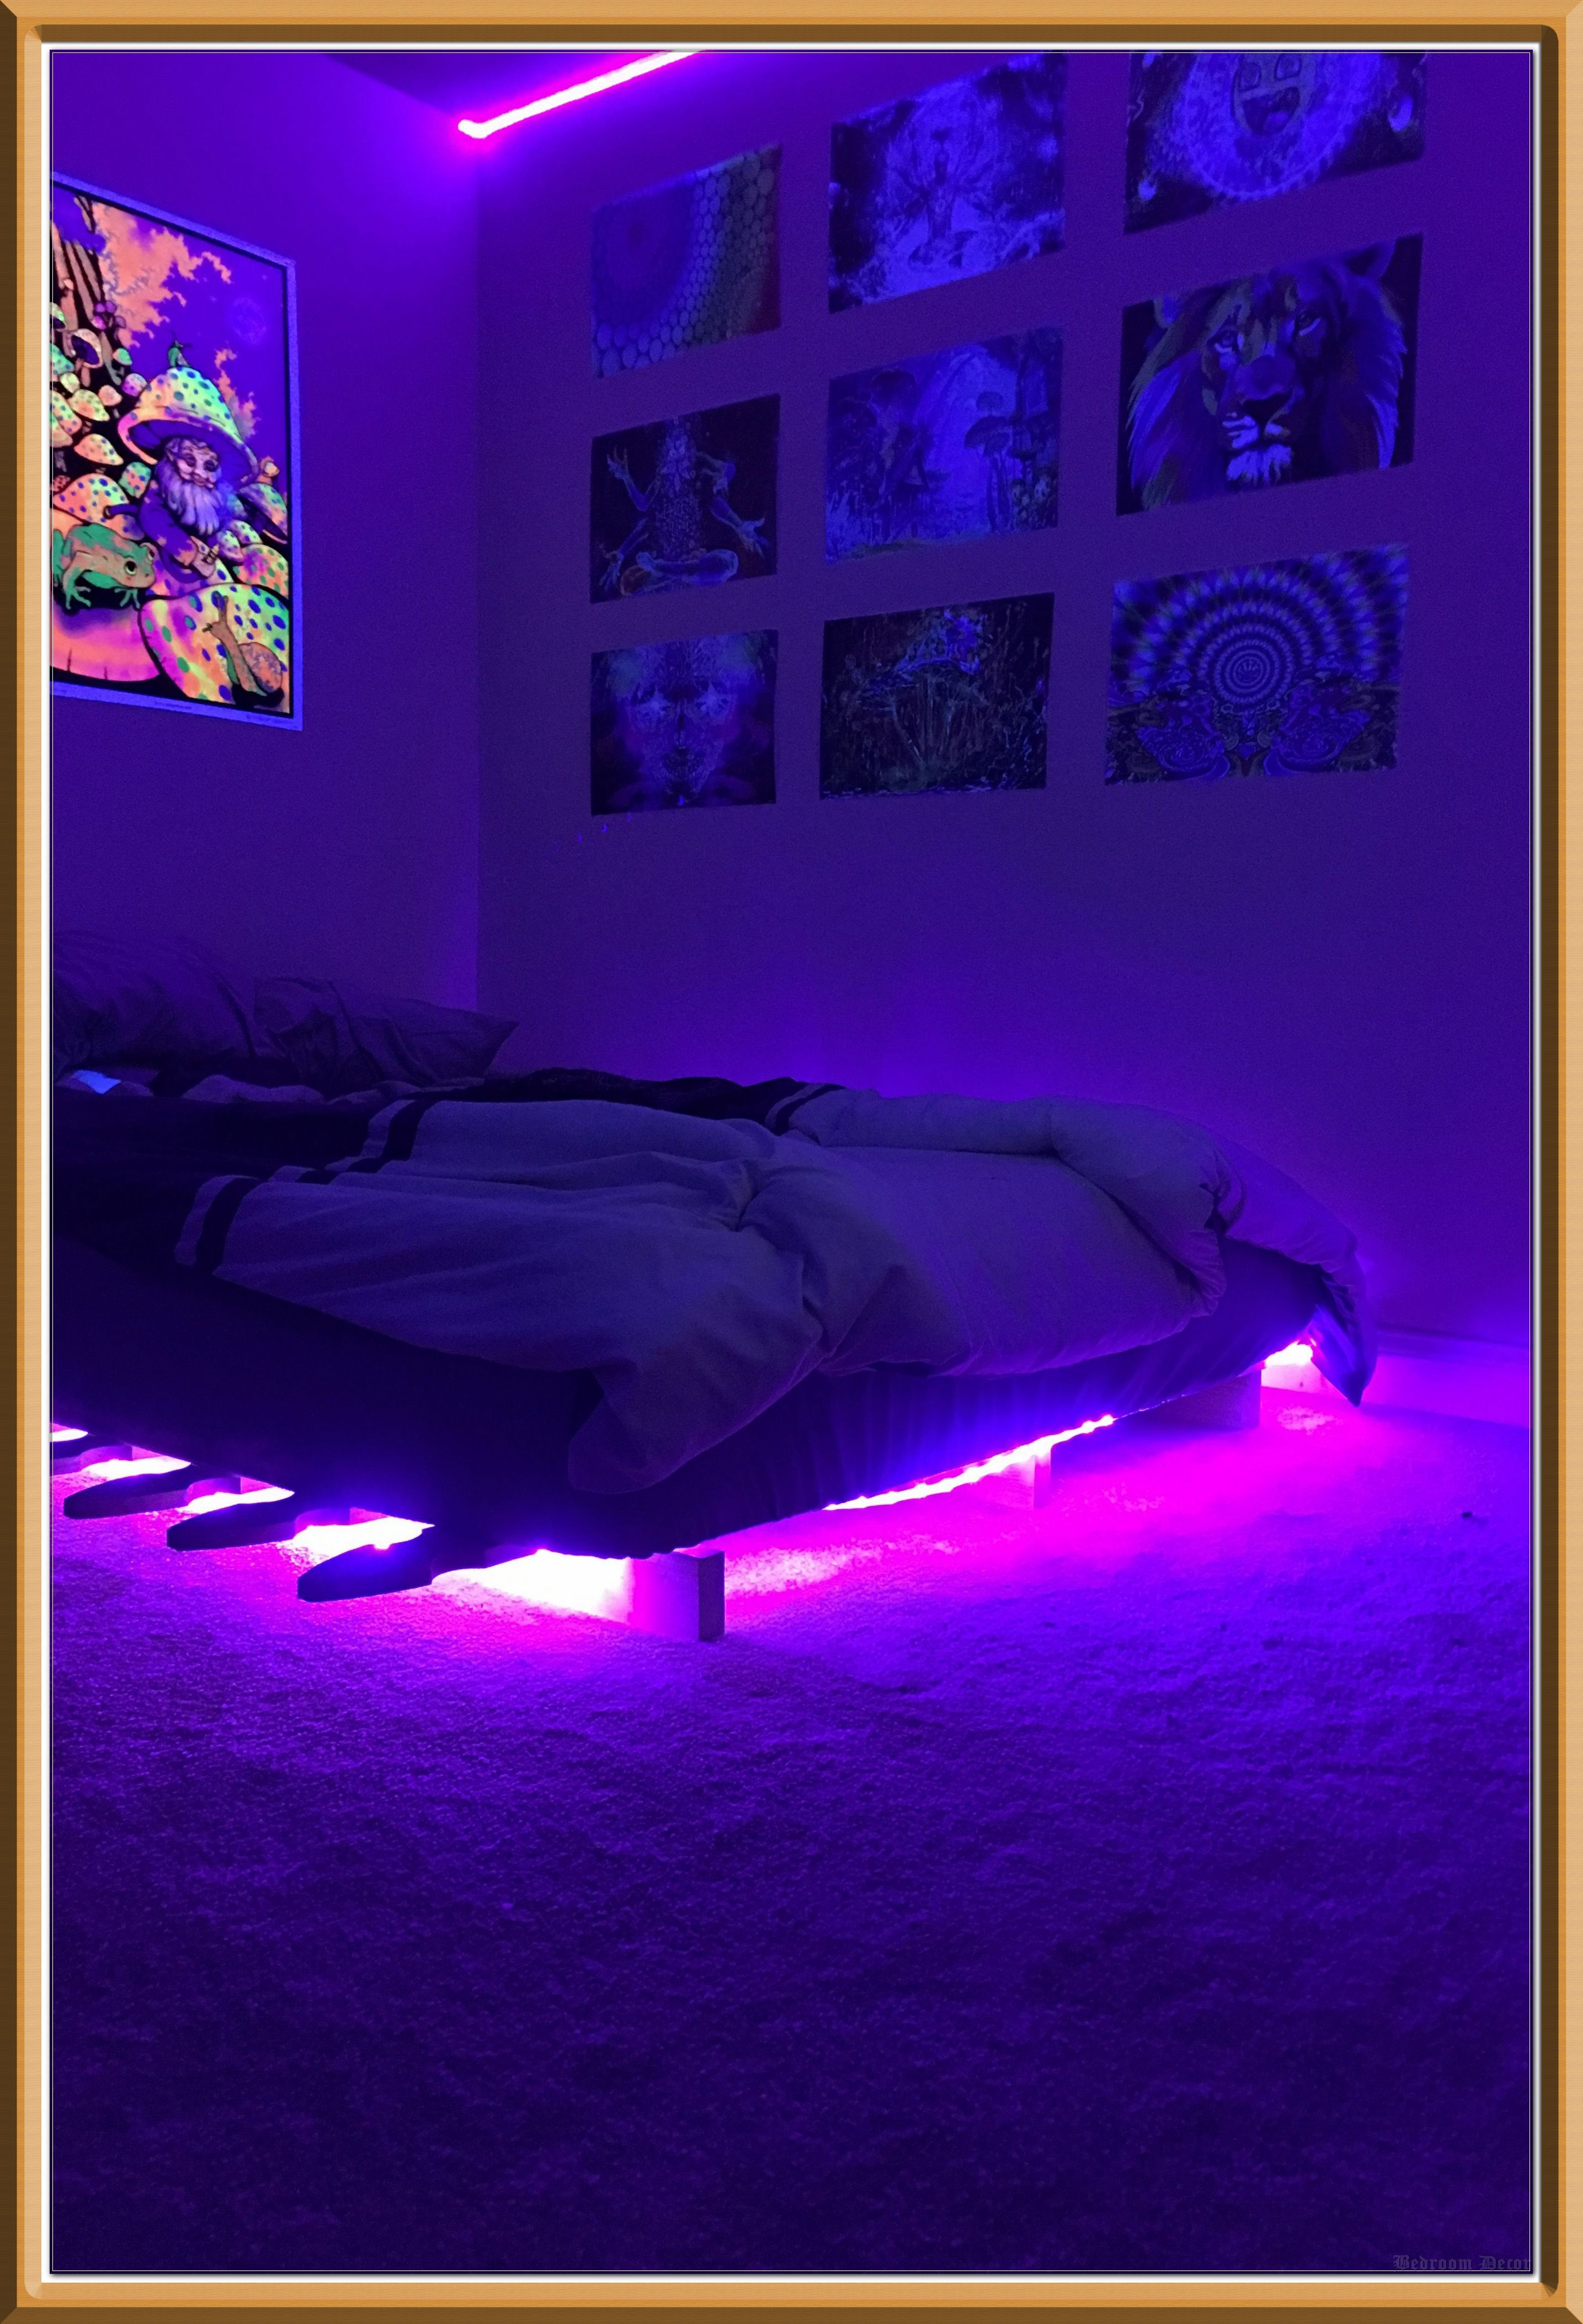 How To Buy A Bedroom Decor On A Shoestring Budget Dream Rooms Dream Rooms For Teens Neon Room